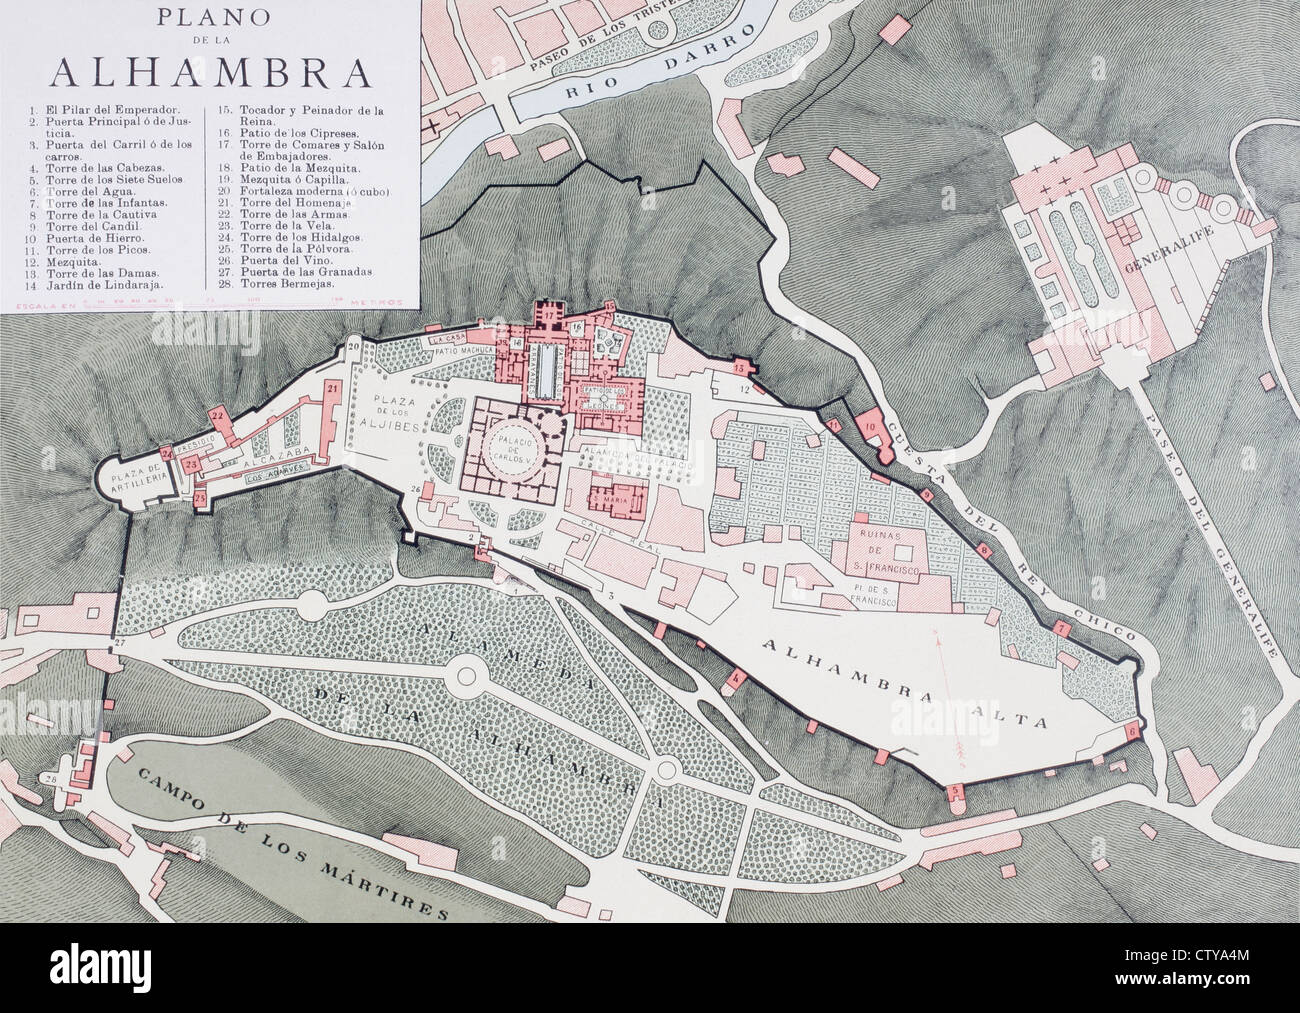 Granada, Spain. Plan of the Alhambra and surrounding districts around the turn of the 20th century - Stock Image